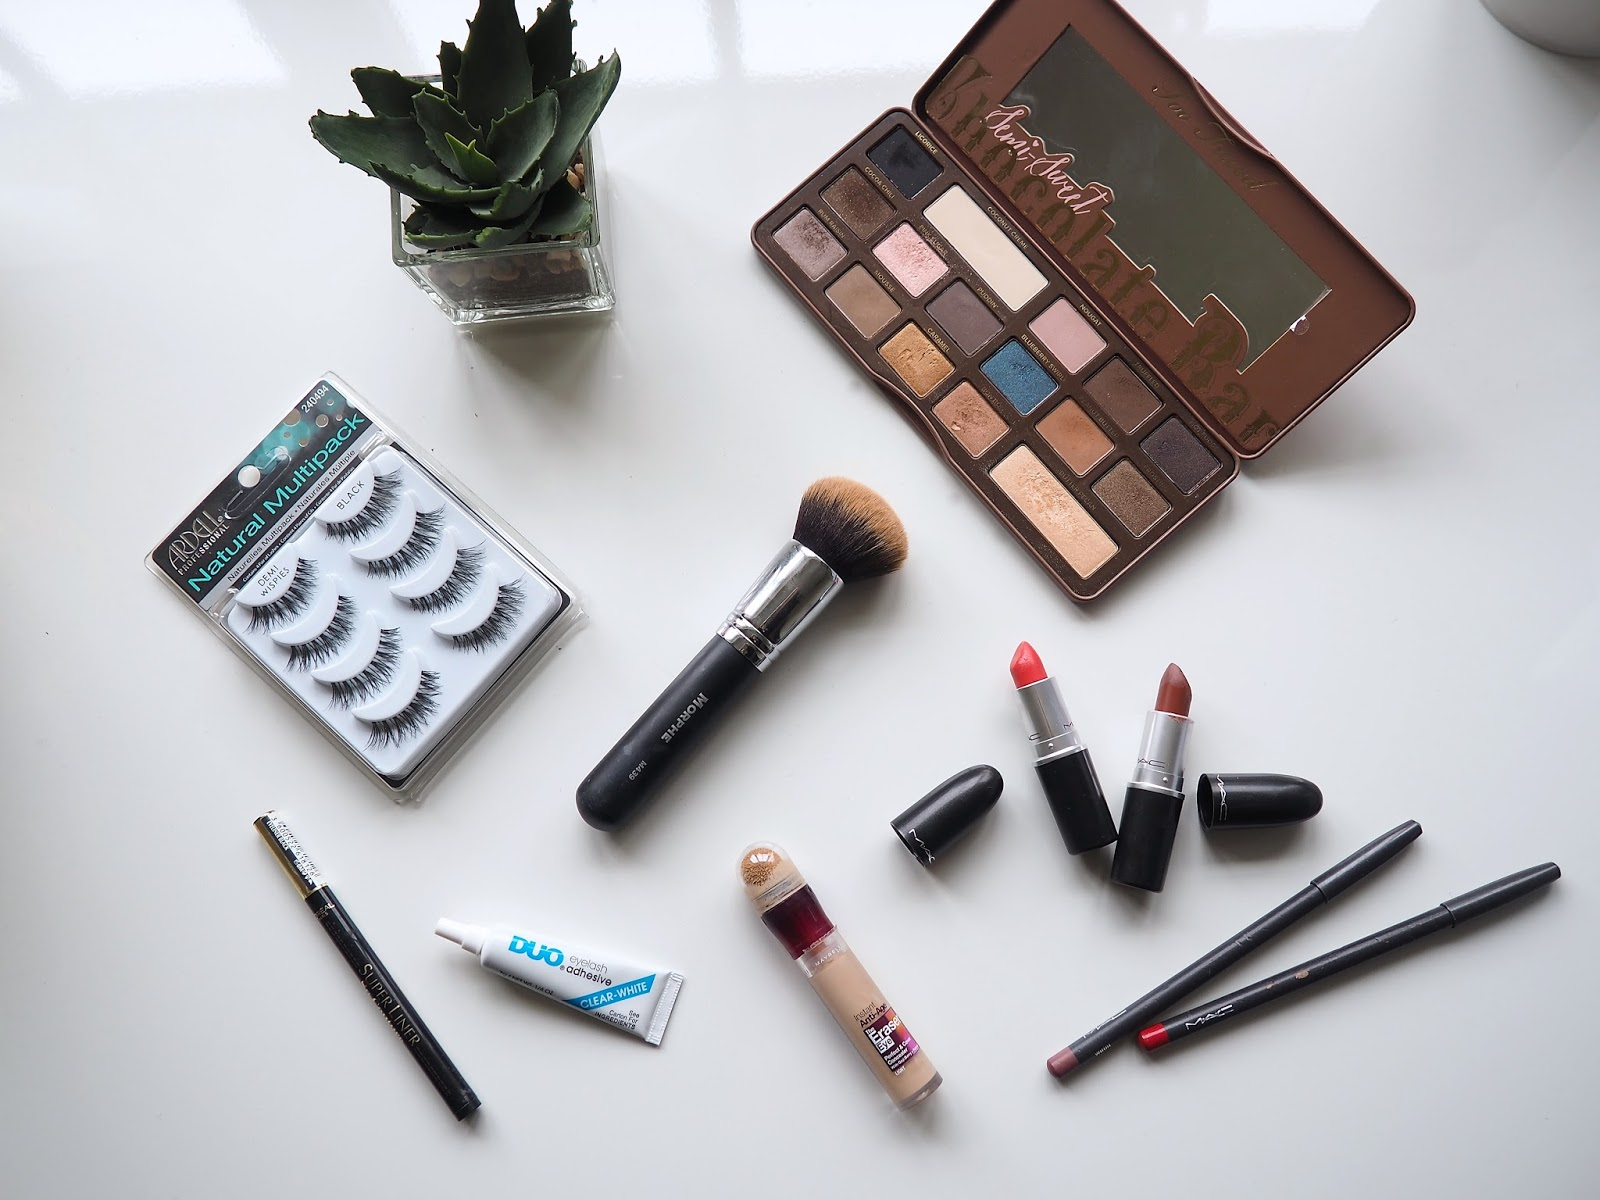 It's Cultured - Seven Beauty Products I Can't Live Without including Too Faced, Mac and L'Oreal